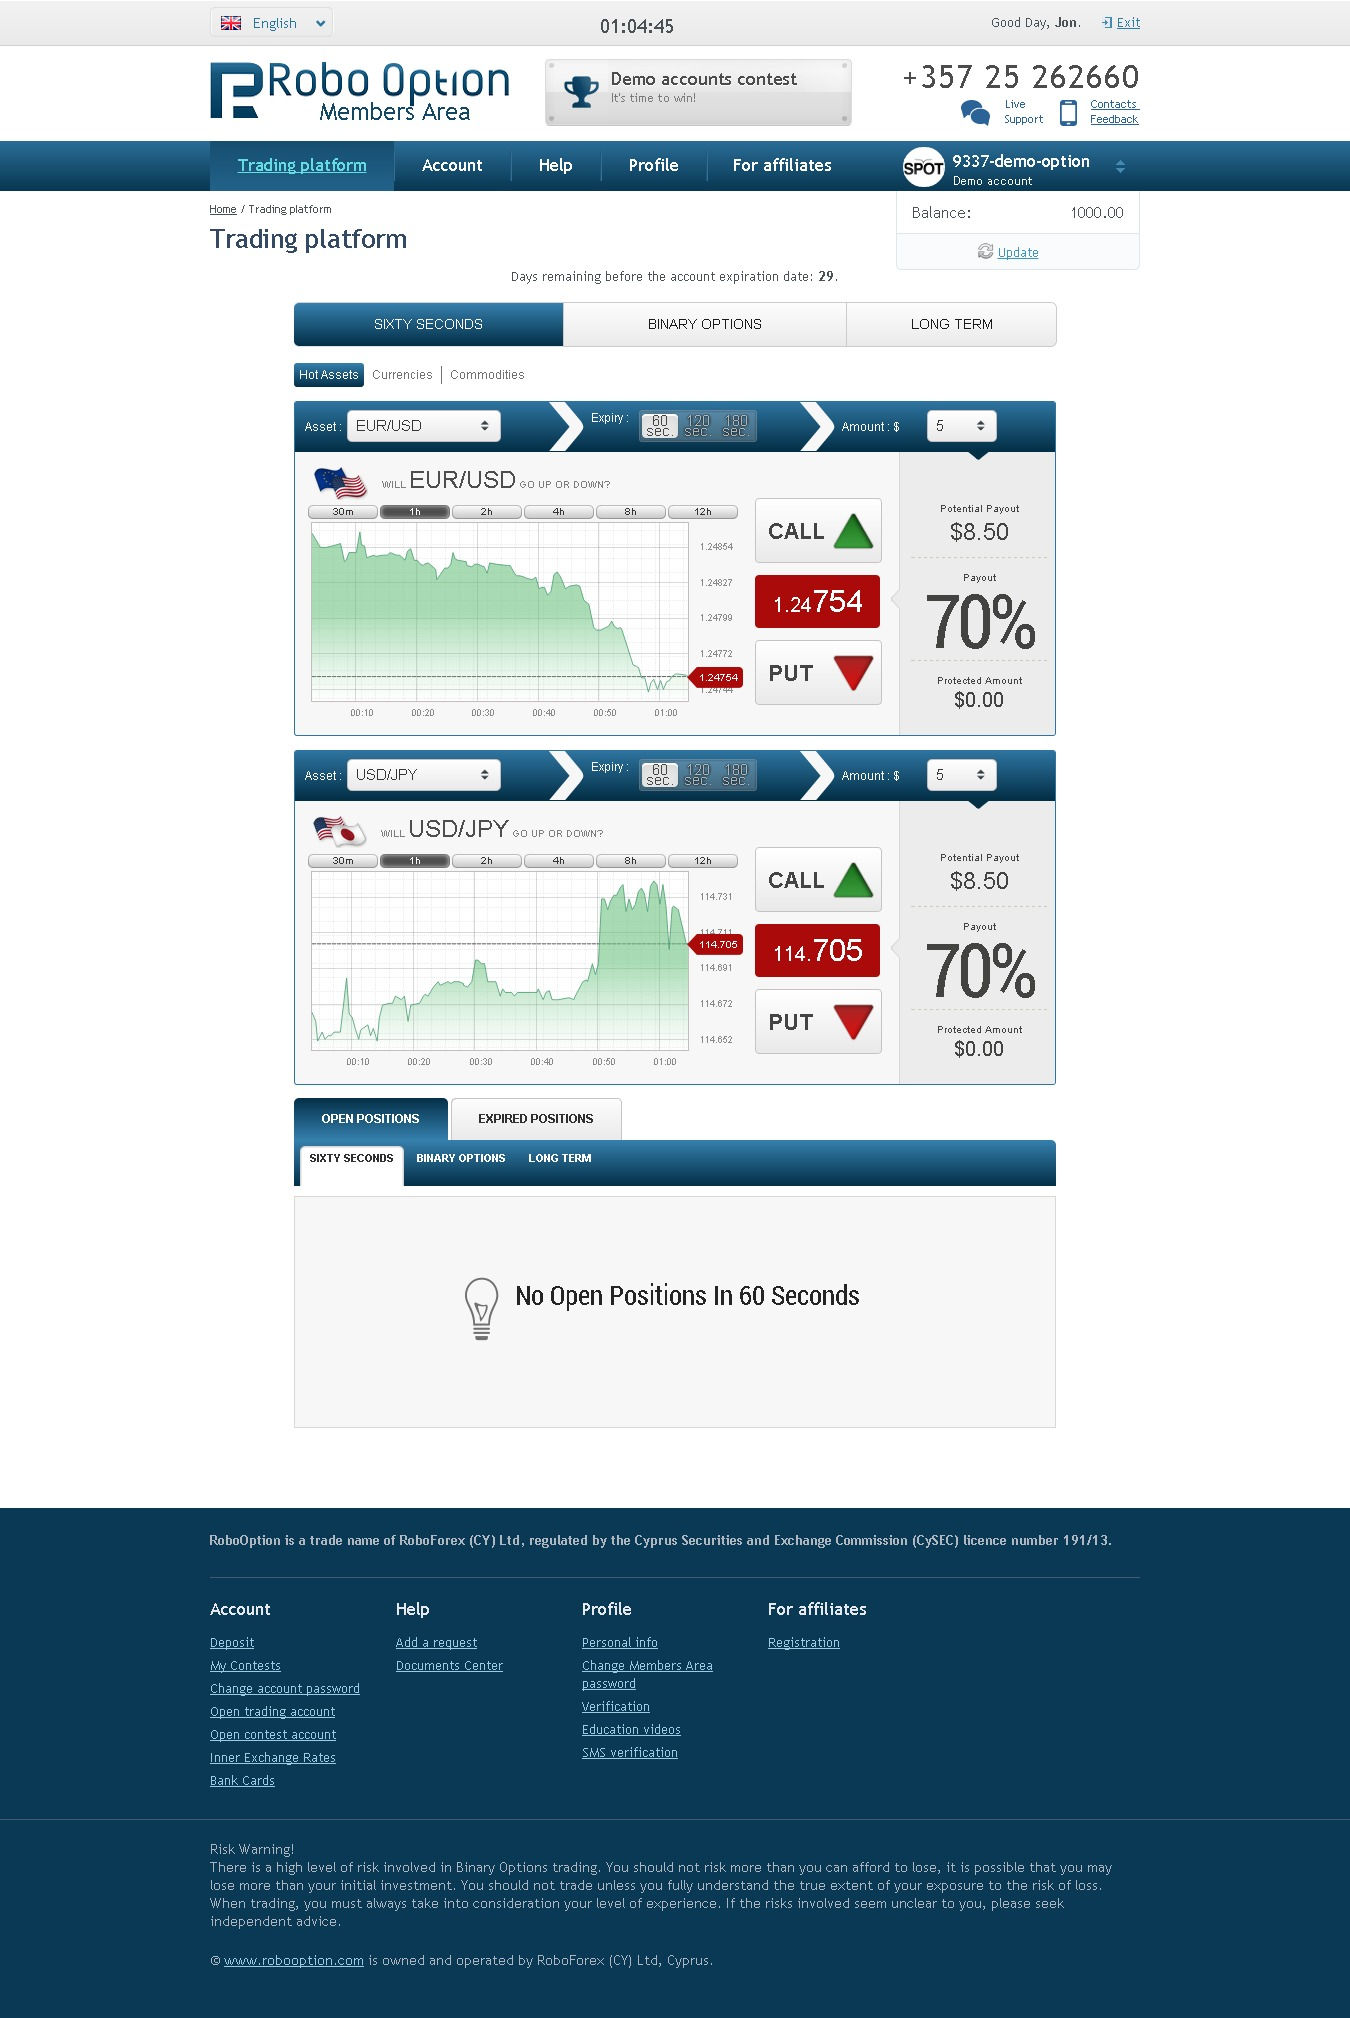 Parabolic sar strategy for binary options real binary options reviews